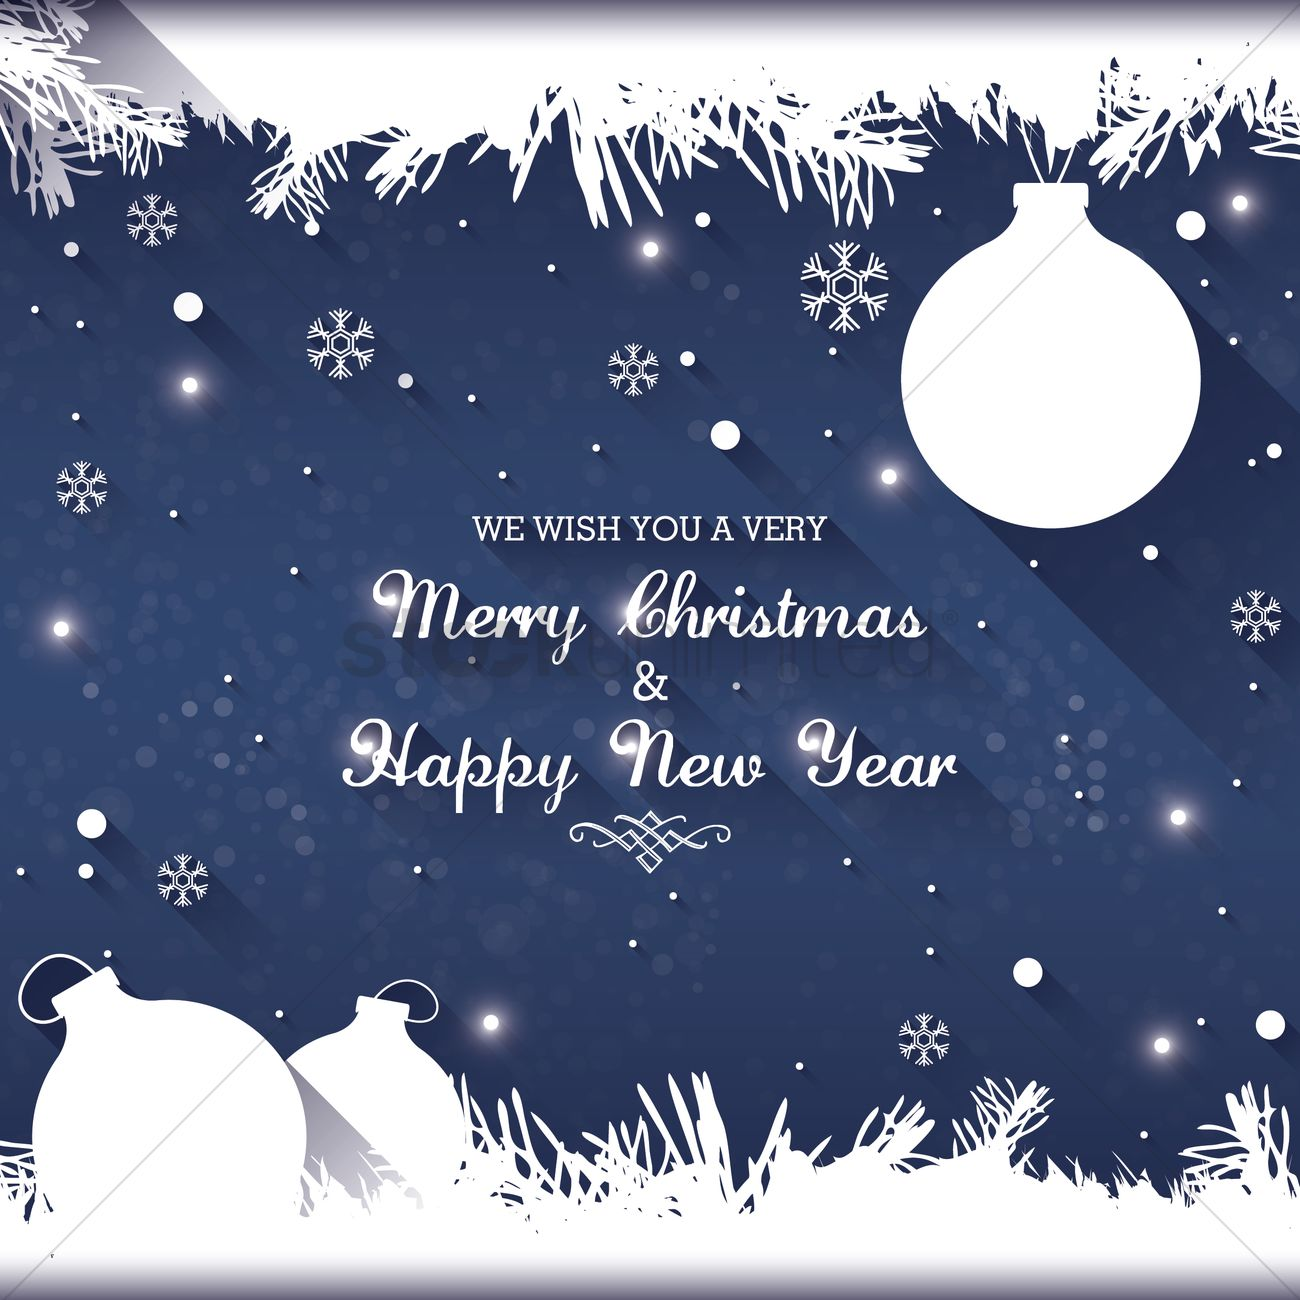 Christmas and new year greetings Vector Image - 1626361 ...